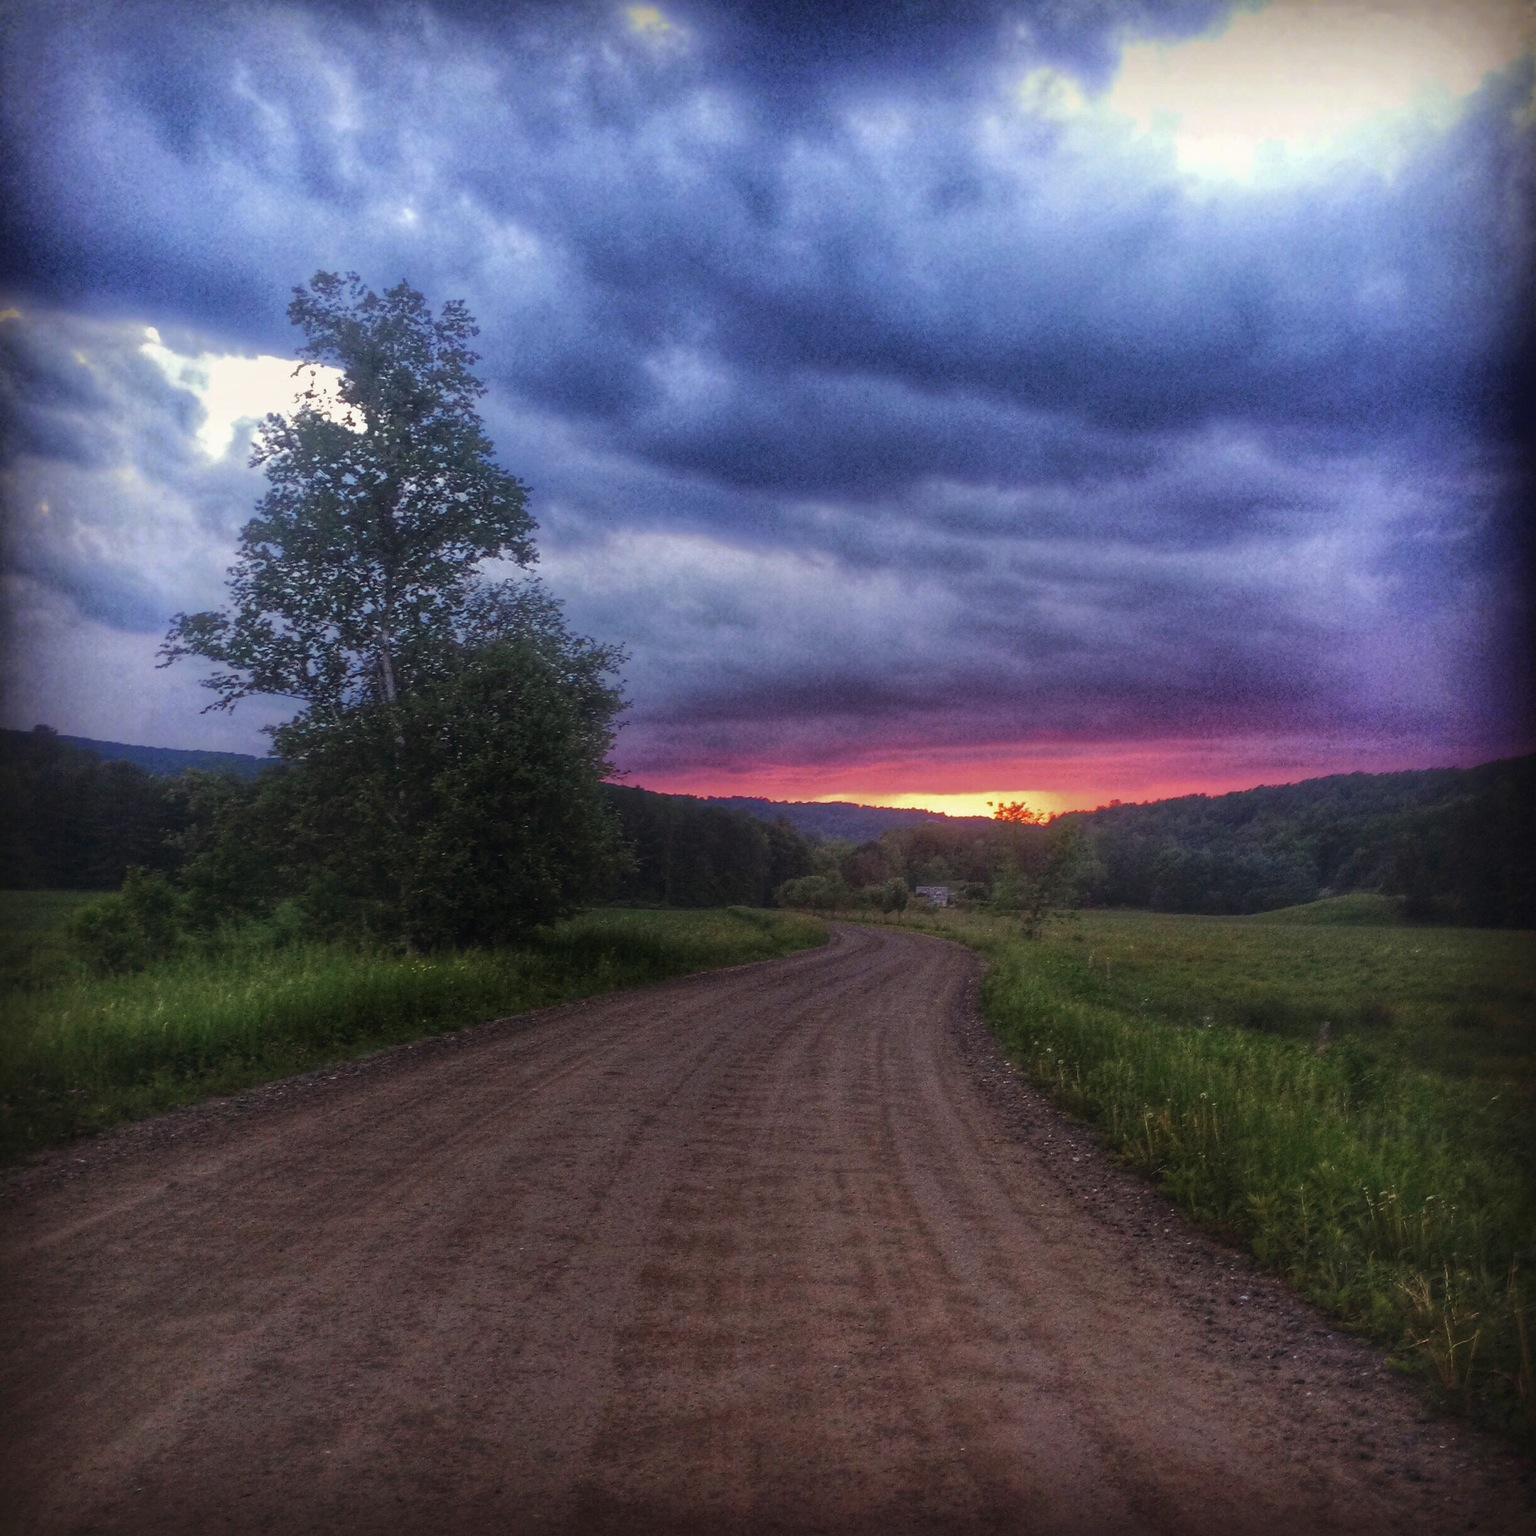 Backroad in mid Vermont, just before a storm.